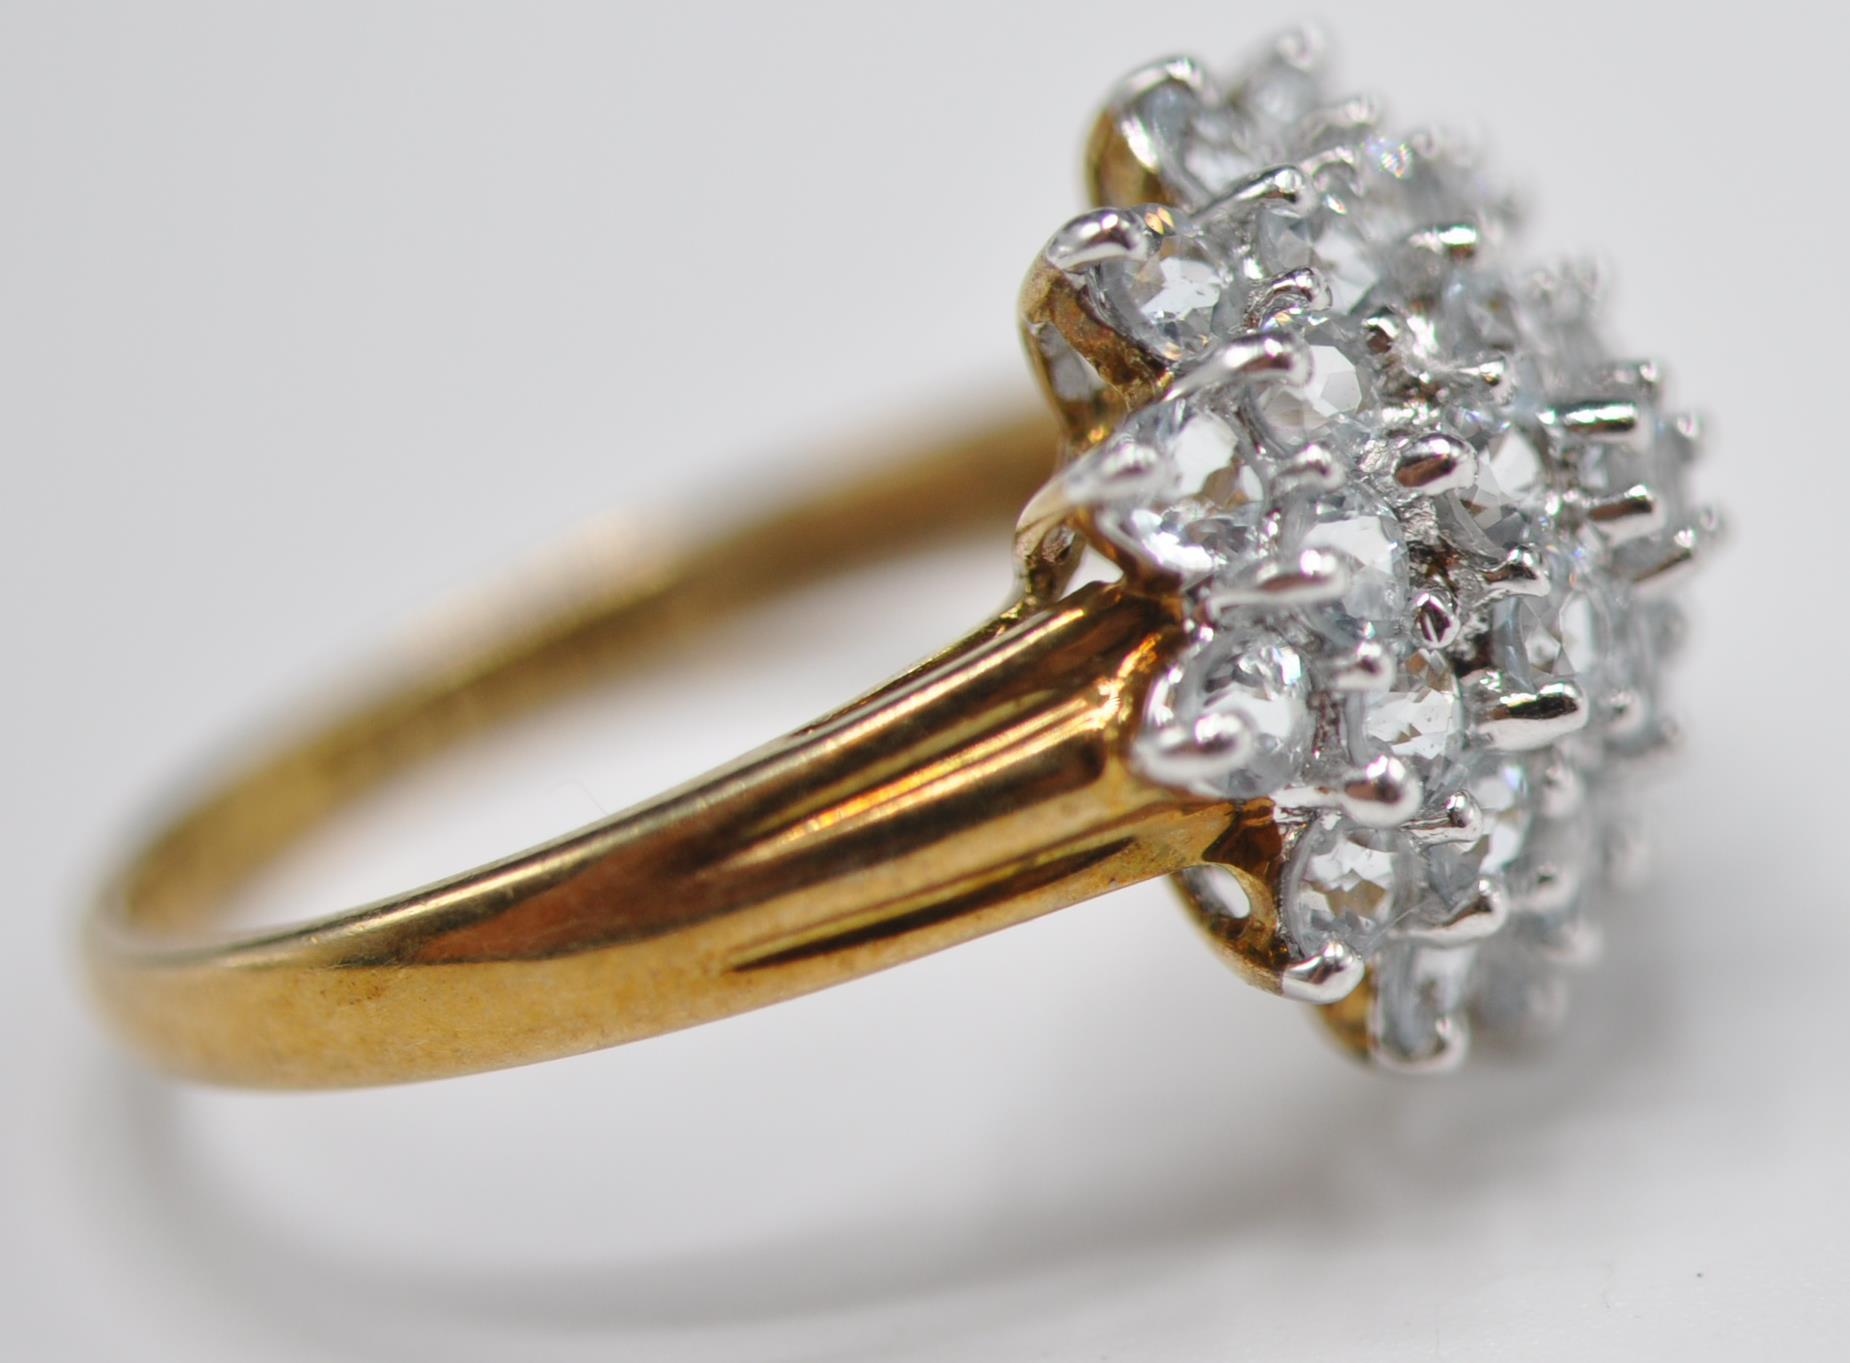 HALLMARKED 9CT GOLD AND BLUE STONE CLUSTER RING - Image 3 of 7